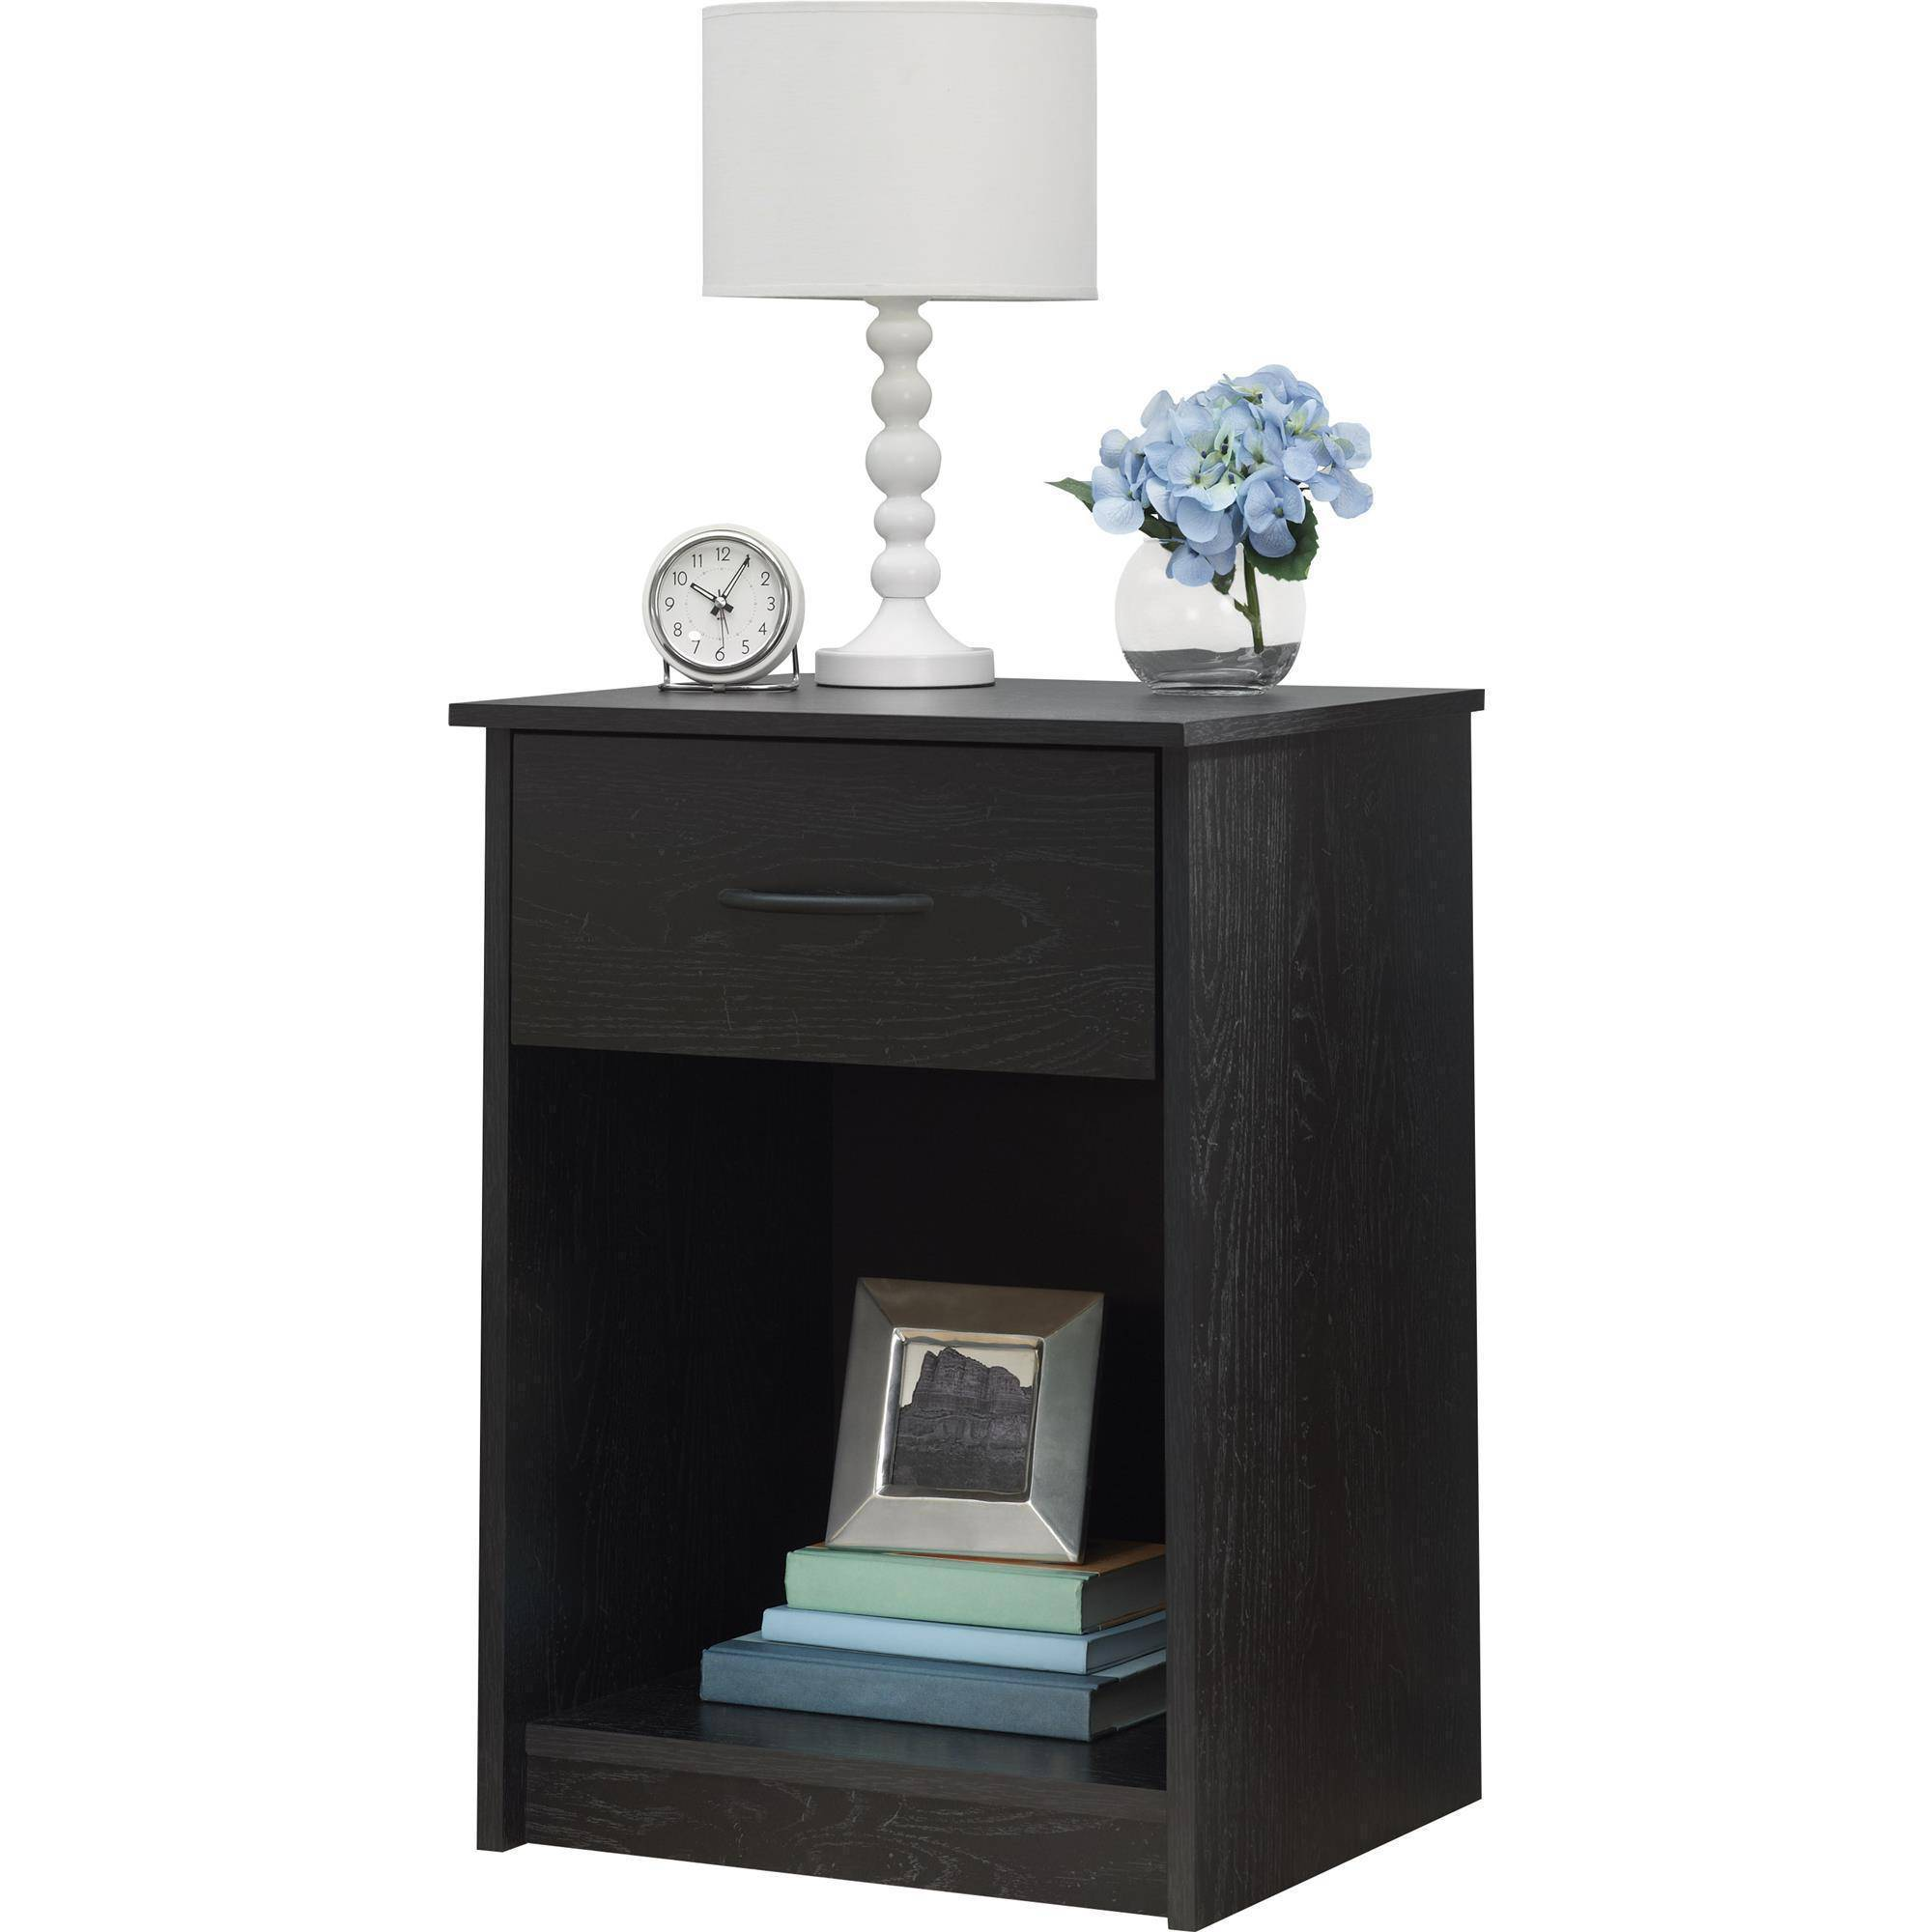 nightstand set bedroom end table bedside shelf drawer furniture tables black ebony leather sofa decorating ideas royal oak bangalore glass cut for rattan coffee top riva italian